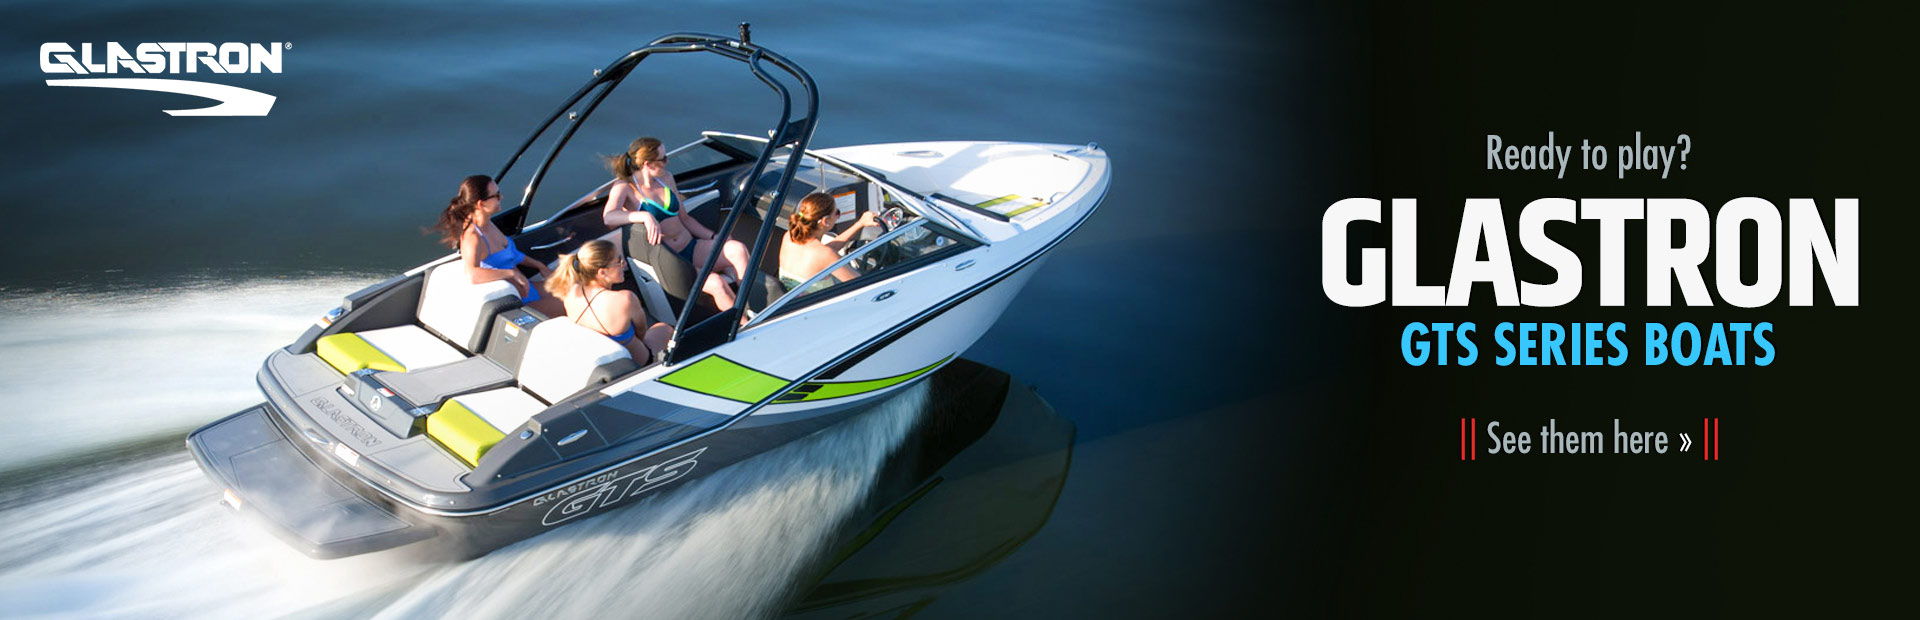 Glastron GTS Series Boats: Click here to see the showcase!